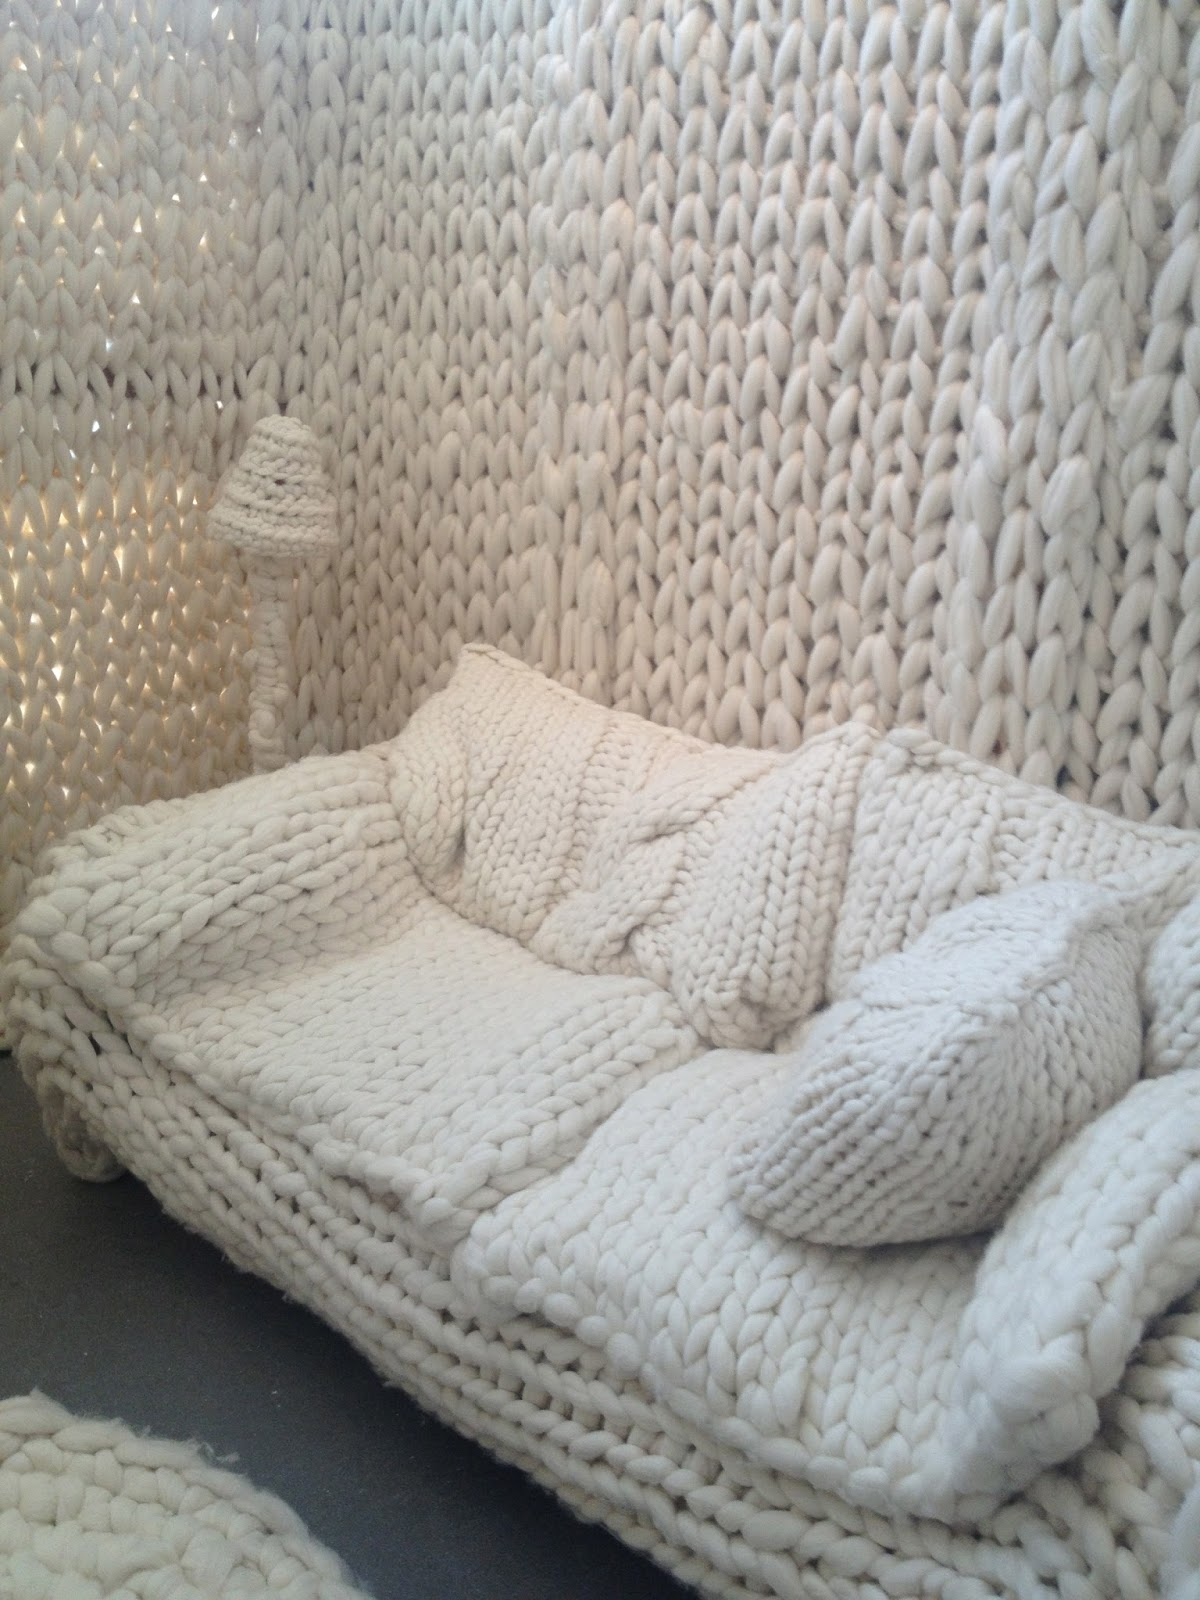 crochet sofa cover patterns upholstery fabric for sofas and chairs knit weave spin dye art prize